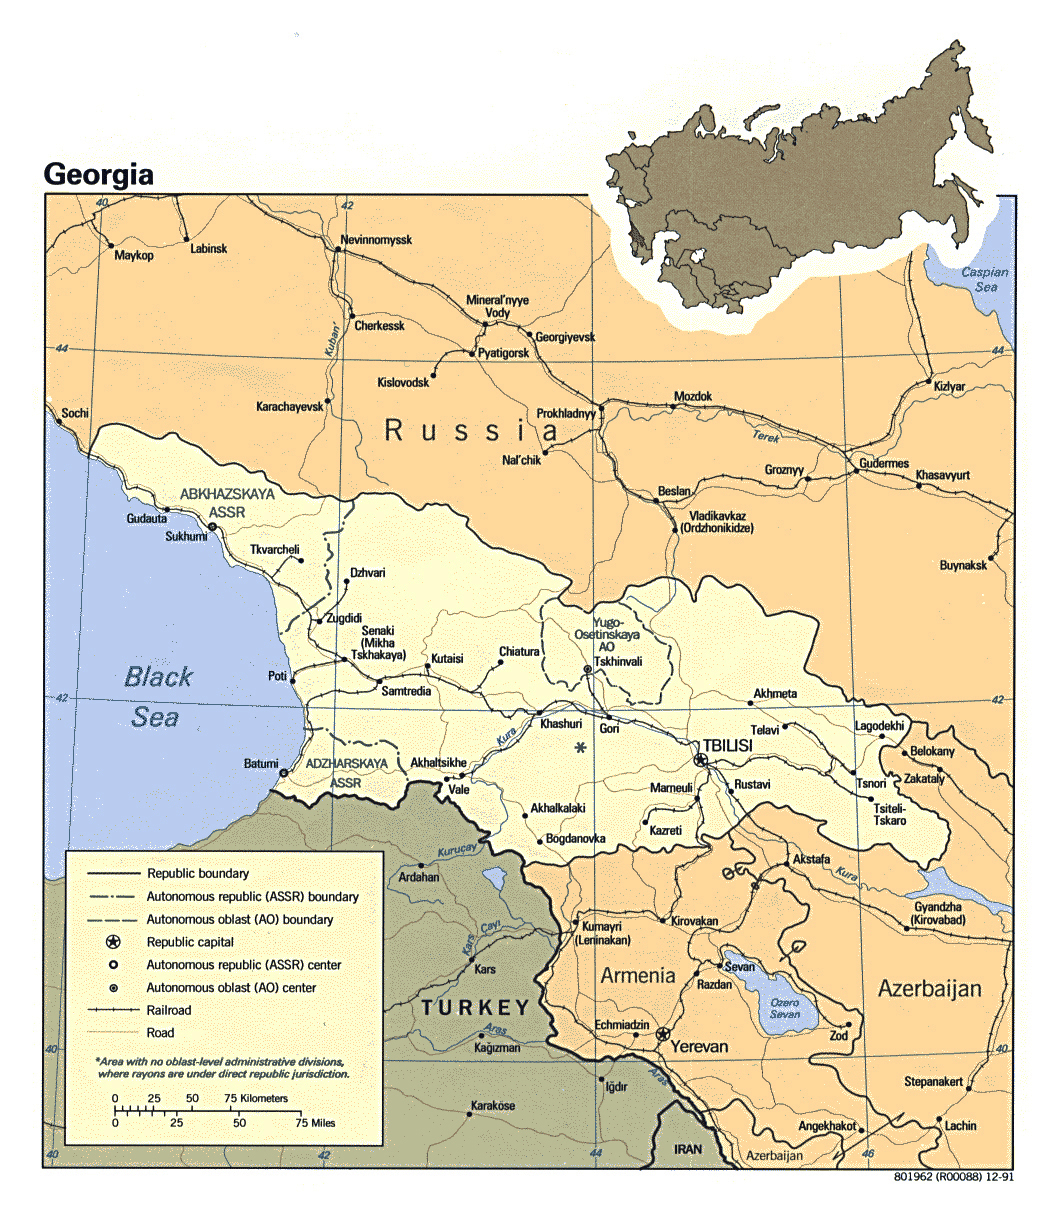 Maps Of Georgia Detailed Map Of Georgia In English Tourist Map - Georgia map major cities